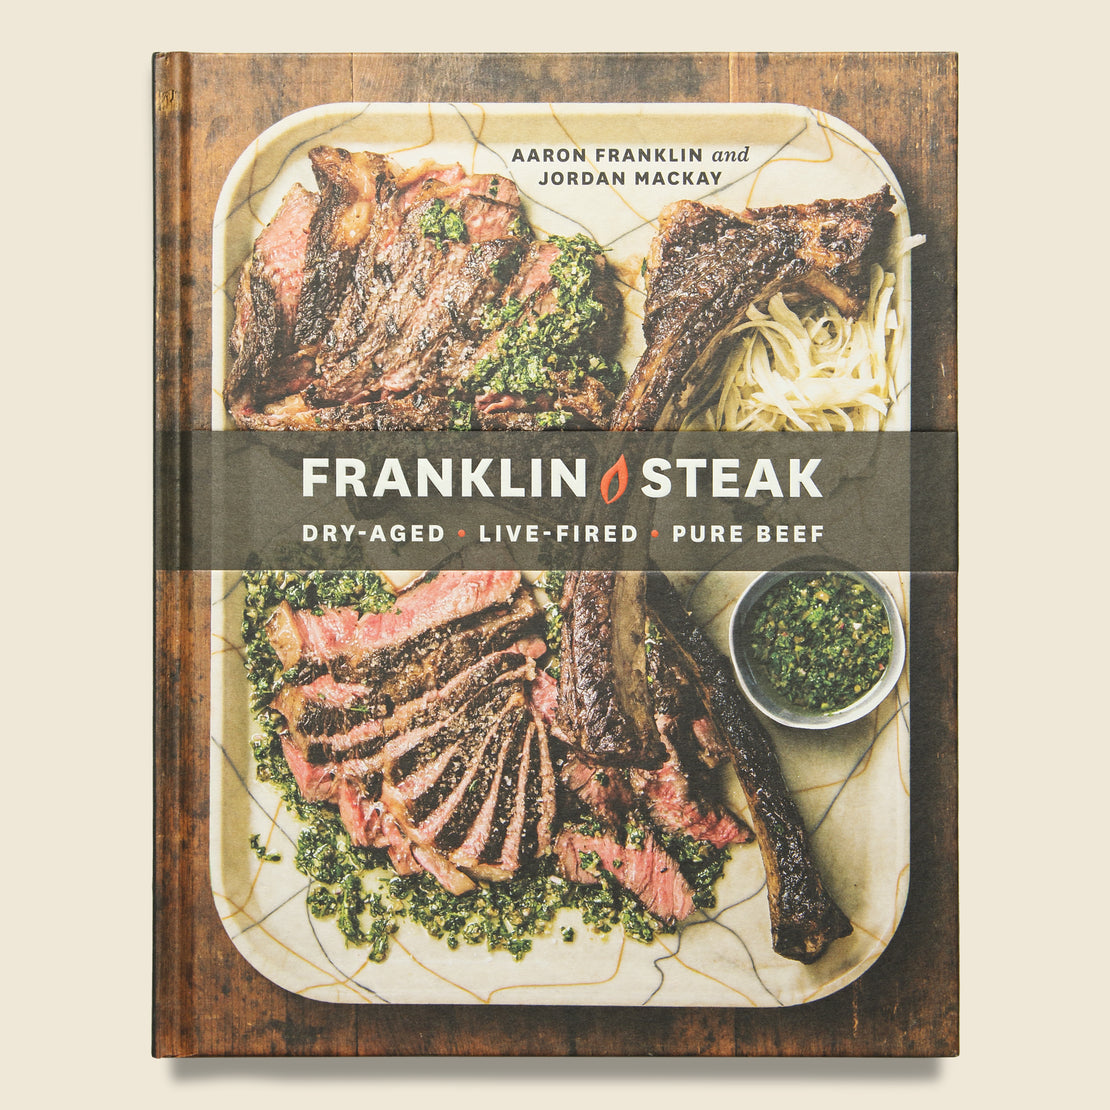 Bookstore Franklin Steak: Dry Aged, Live-Fired, Pure Beef - Aaron Franklin